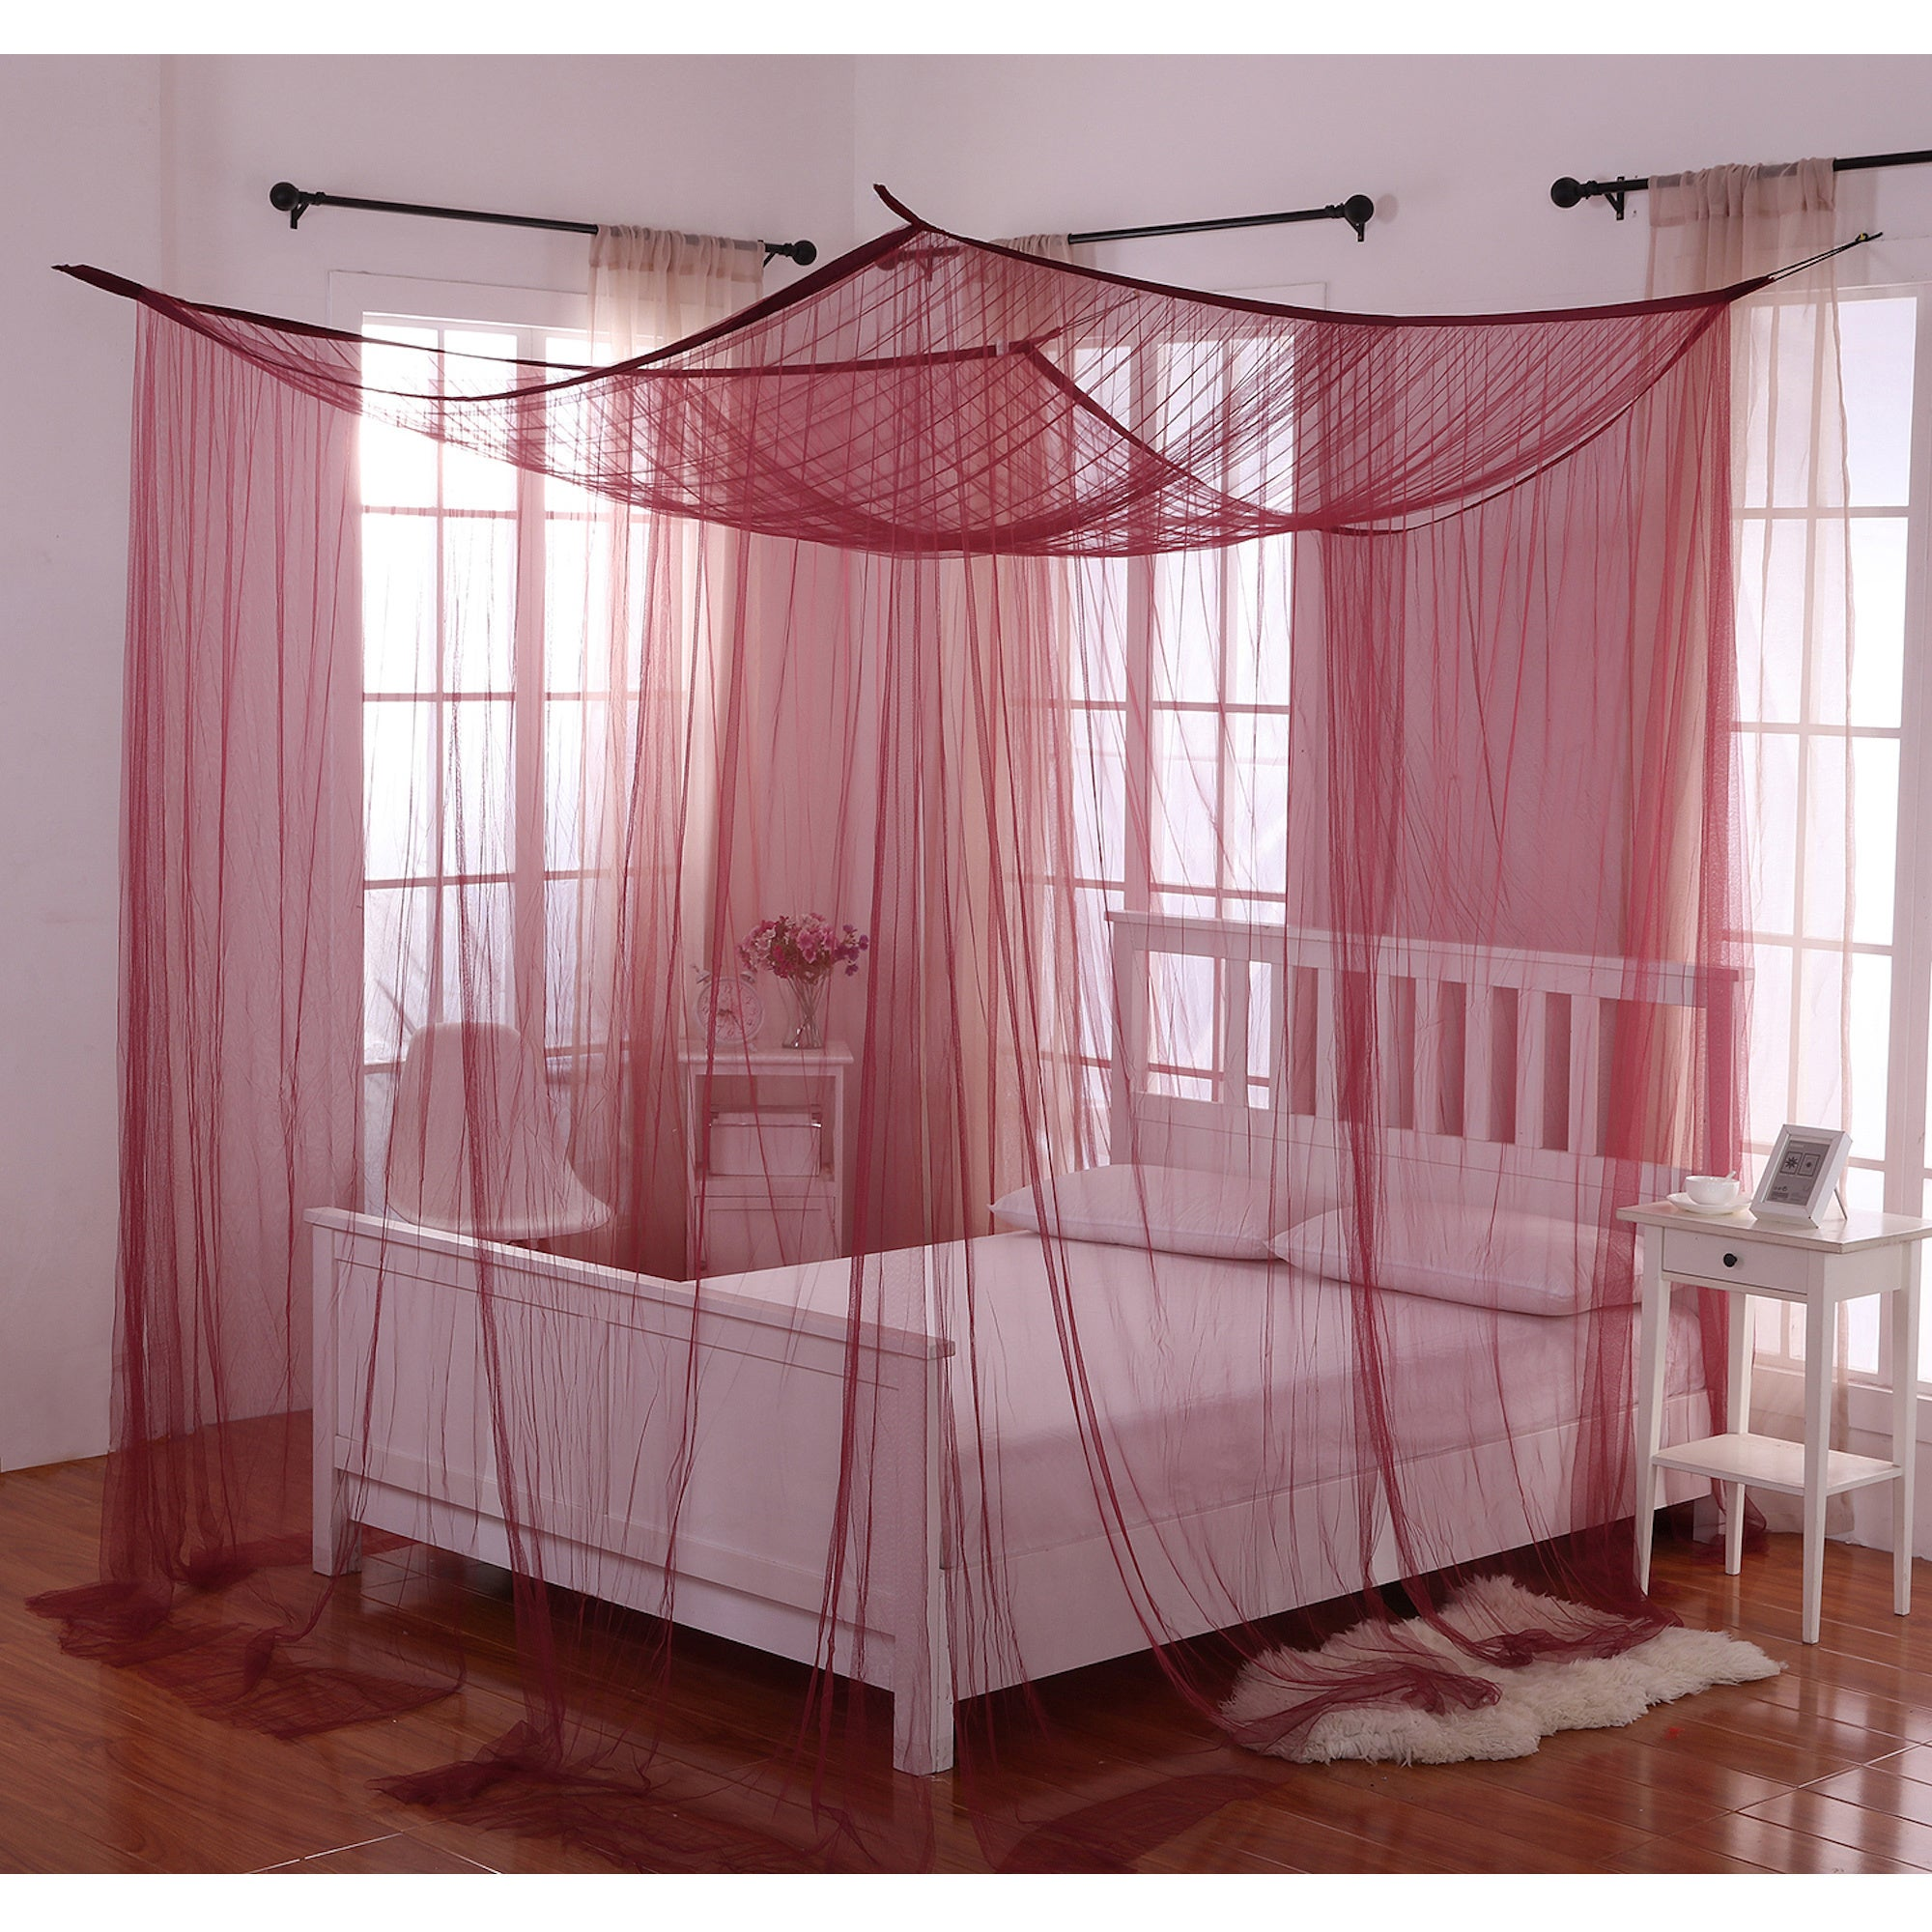 Shop Palace 4 Post Bed Sheer Panel Canopy